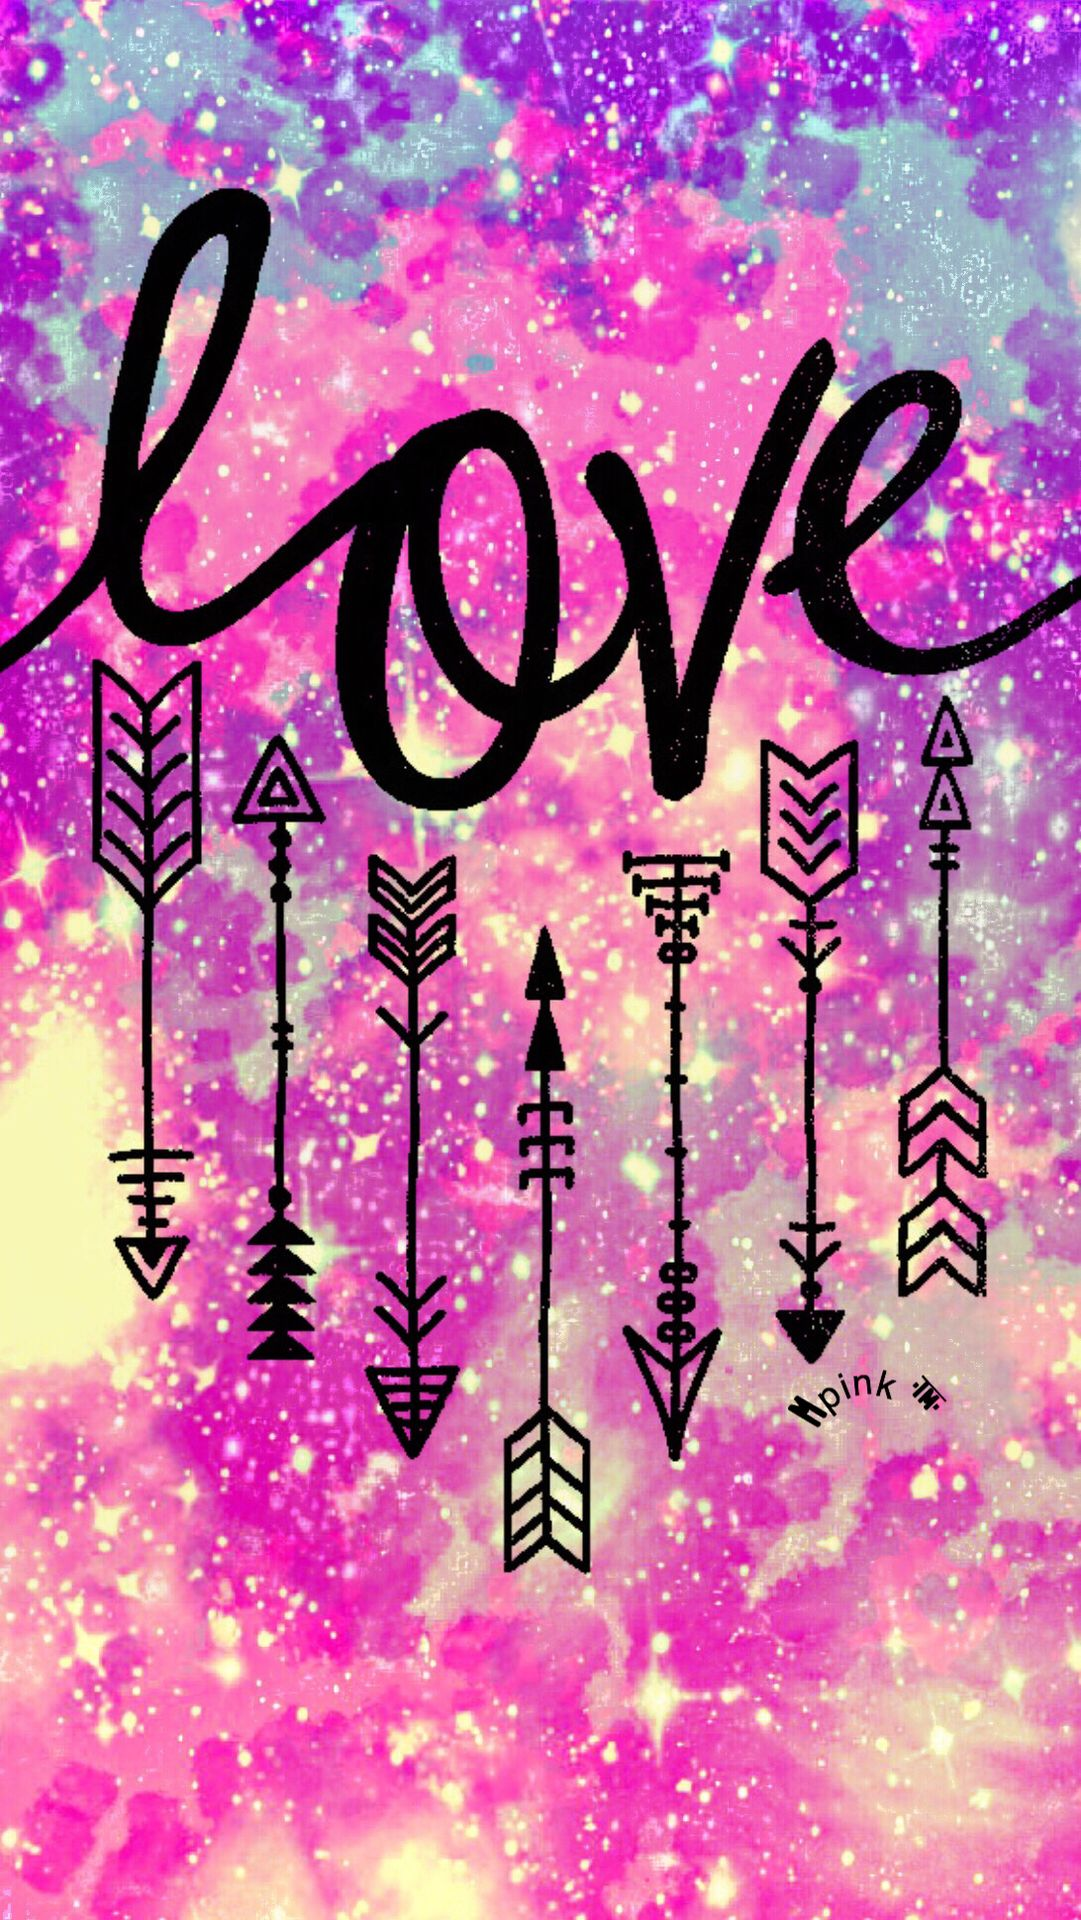 Love Hipster Arrows Galaxy iPhone/Android Wallpaper  My Wallpaper Creations in 2019  Cute